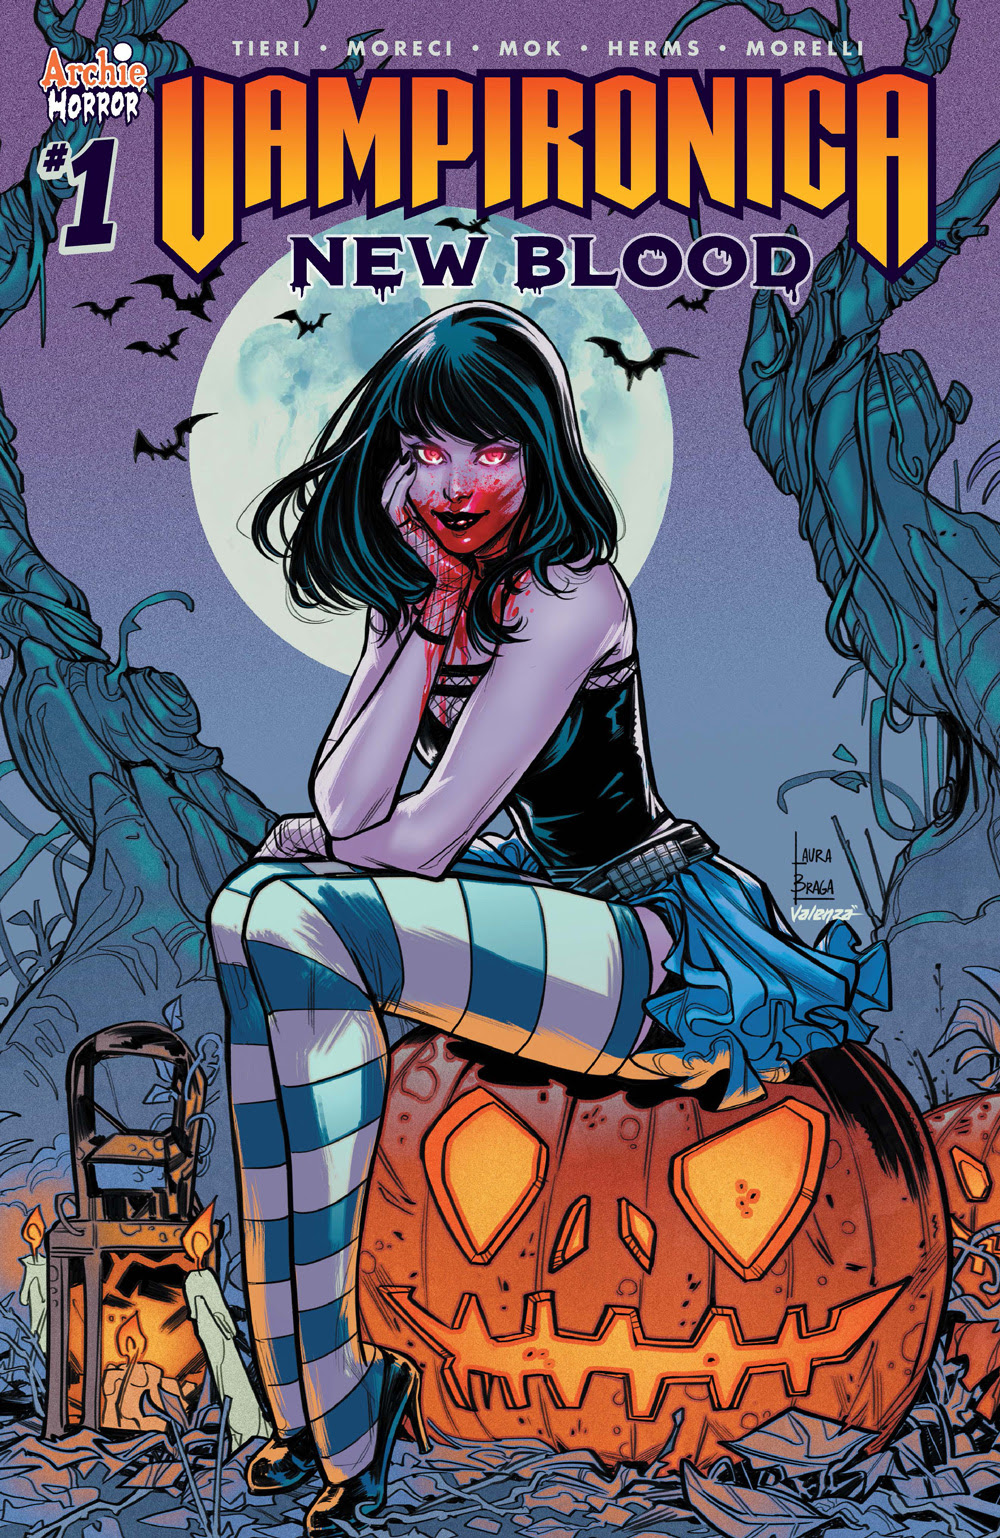 VAMPIRONICA: NEW BLOOD #1: CVR B Braga